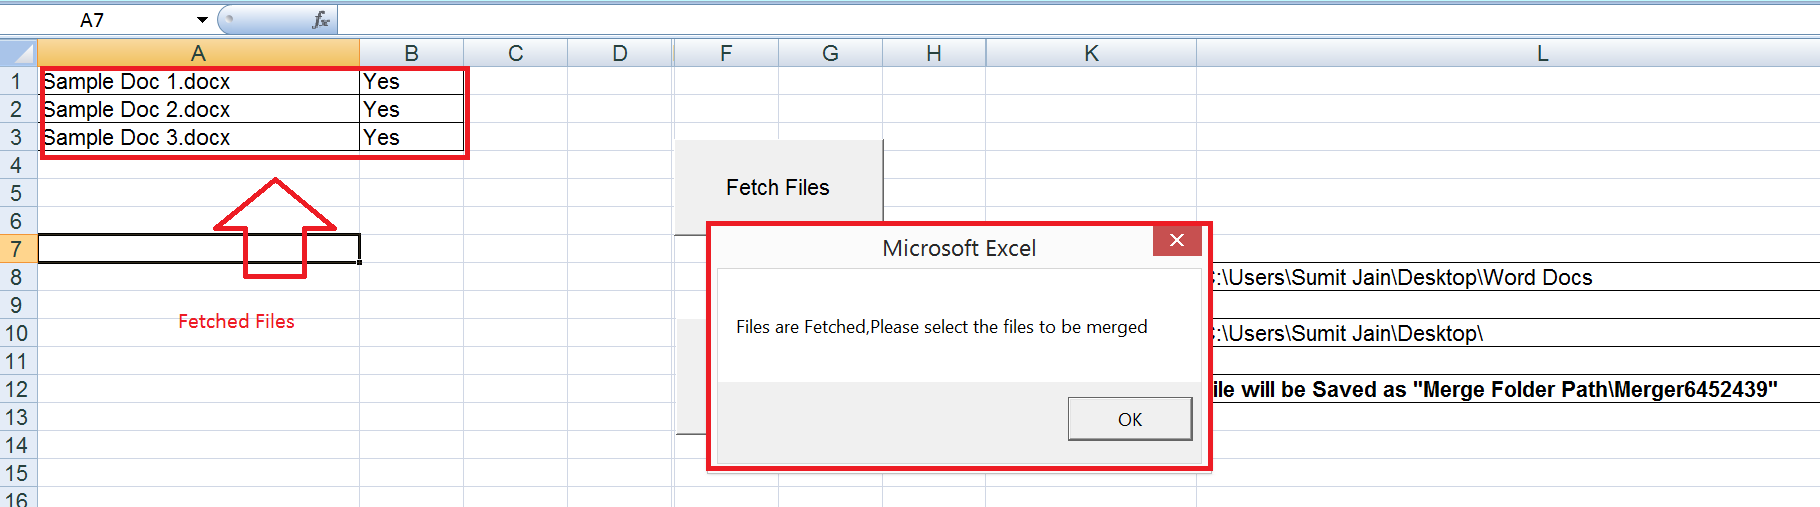 Fetch Files